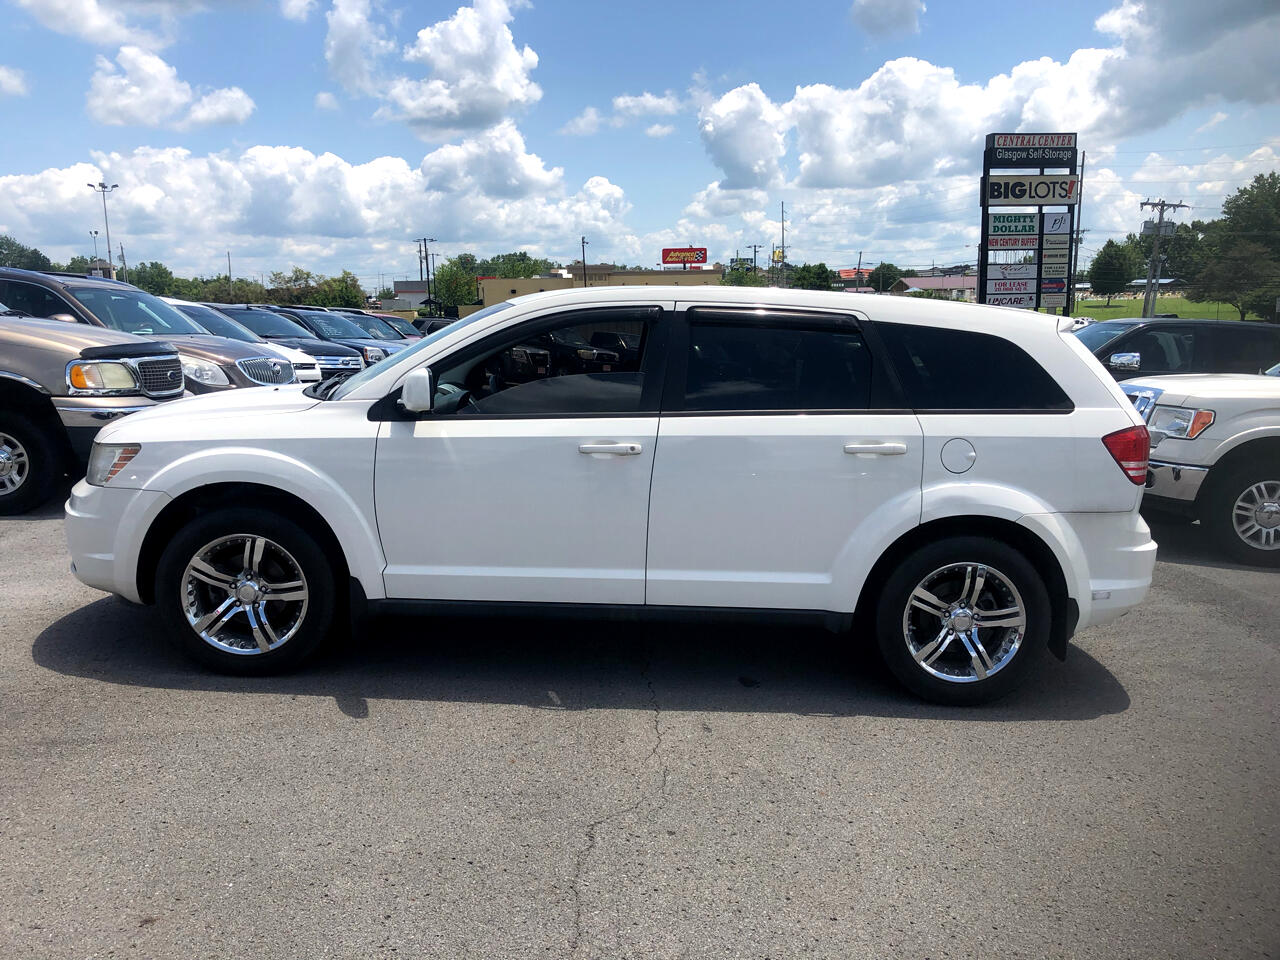 Green Country Auto Sales >> Used 2009 Dodge Journey For Sale In Glasgow Ky 42141 Country Auto Sales